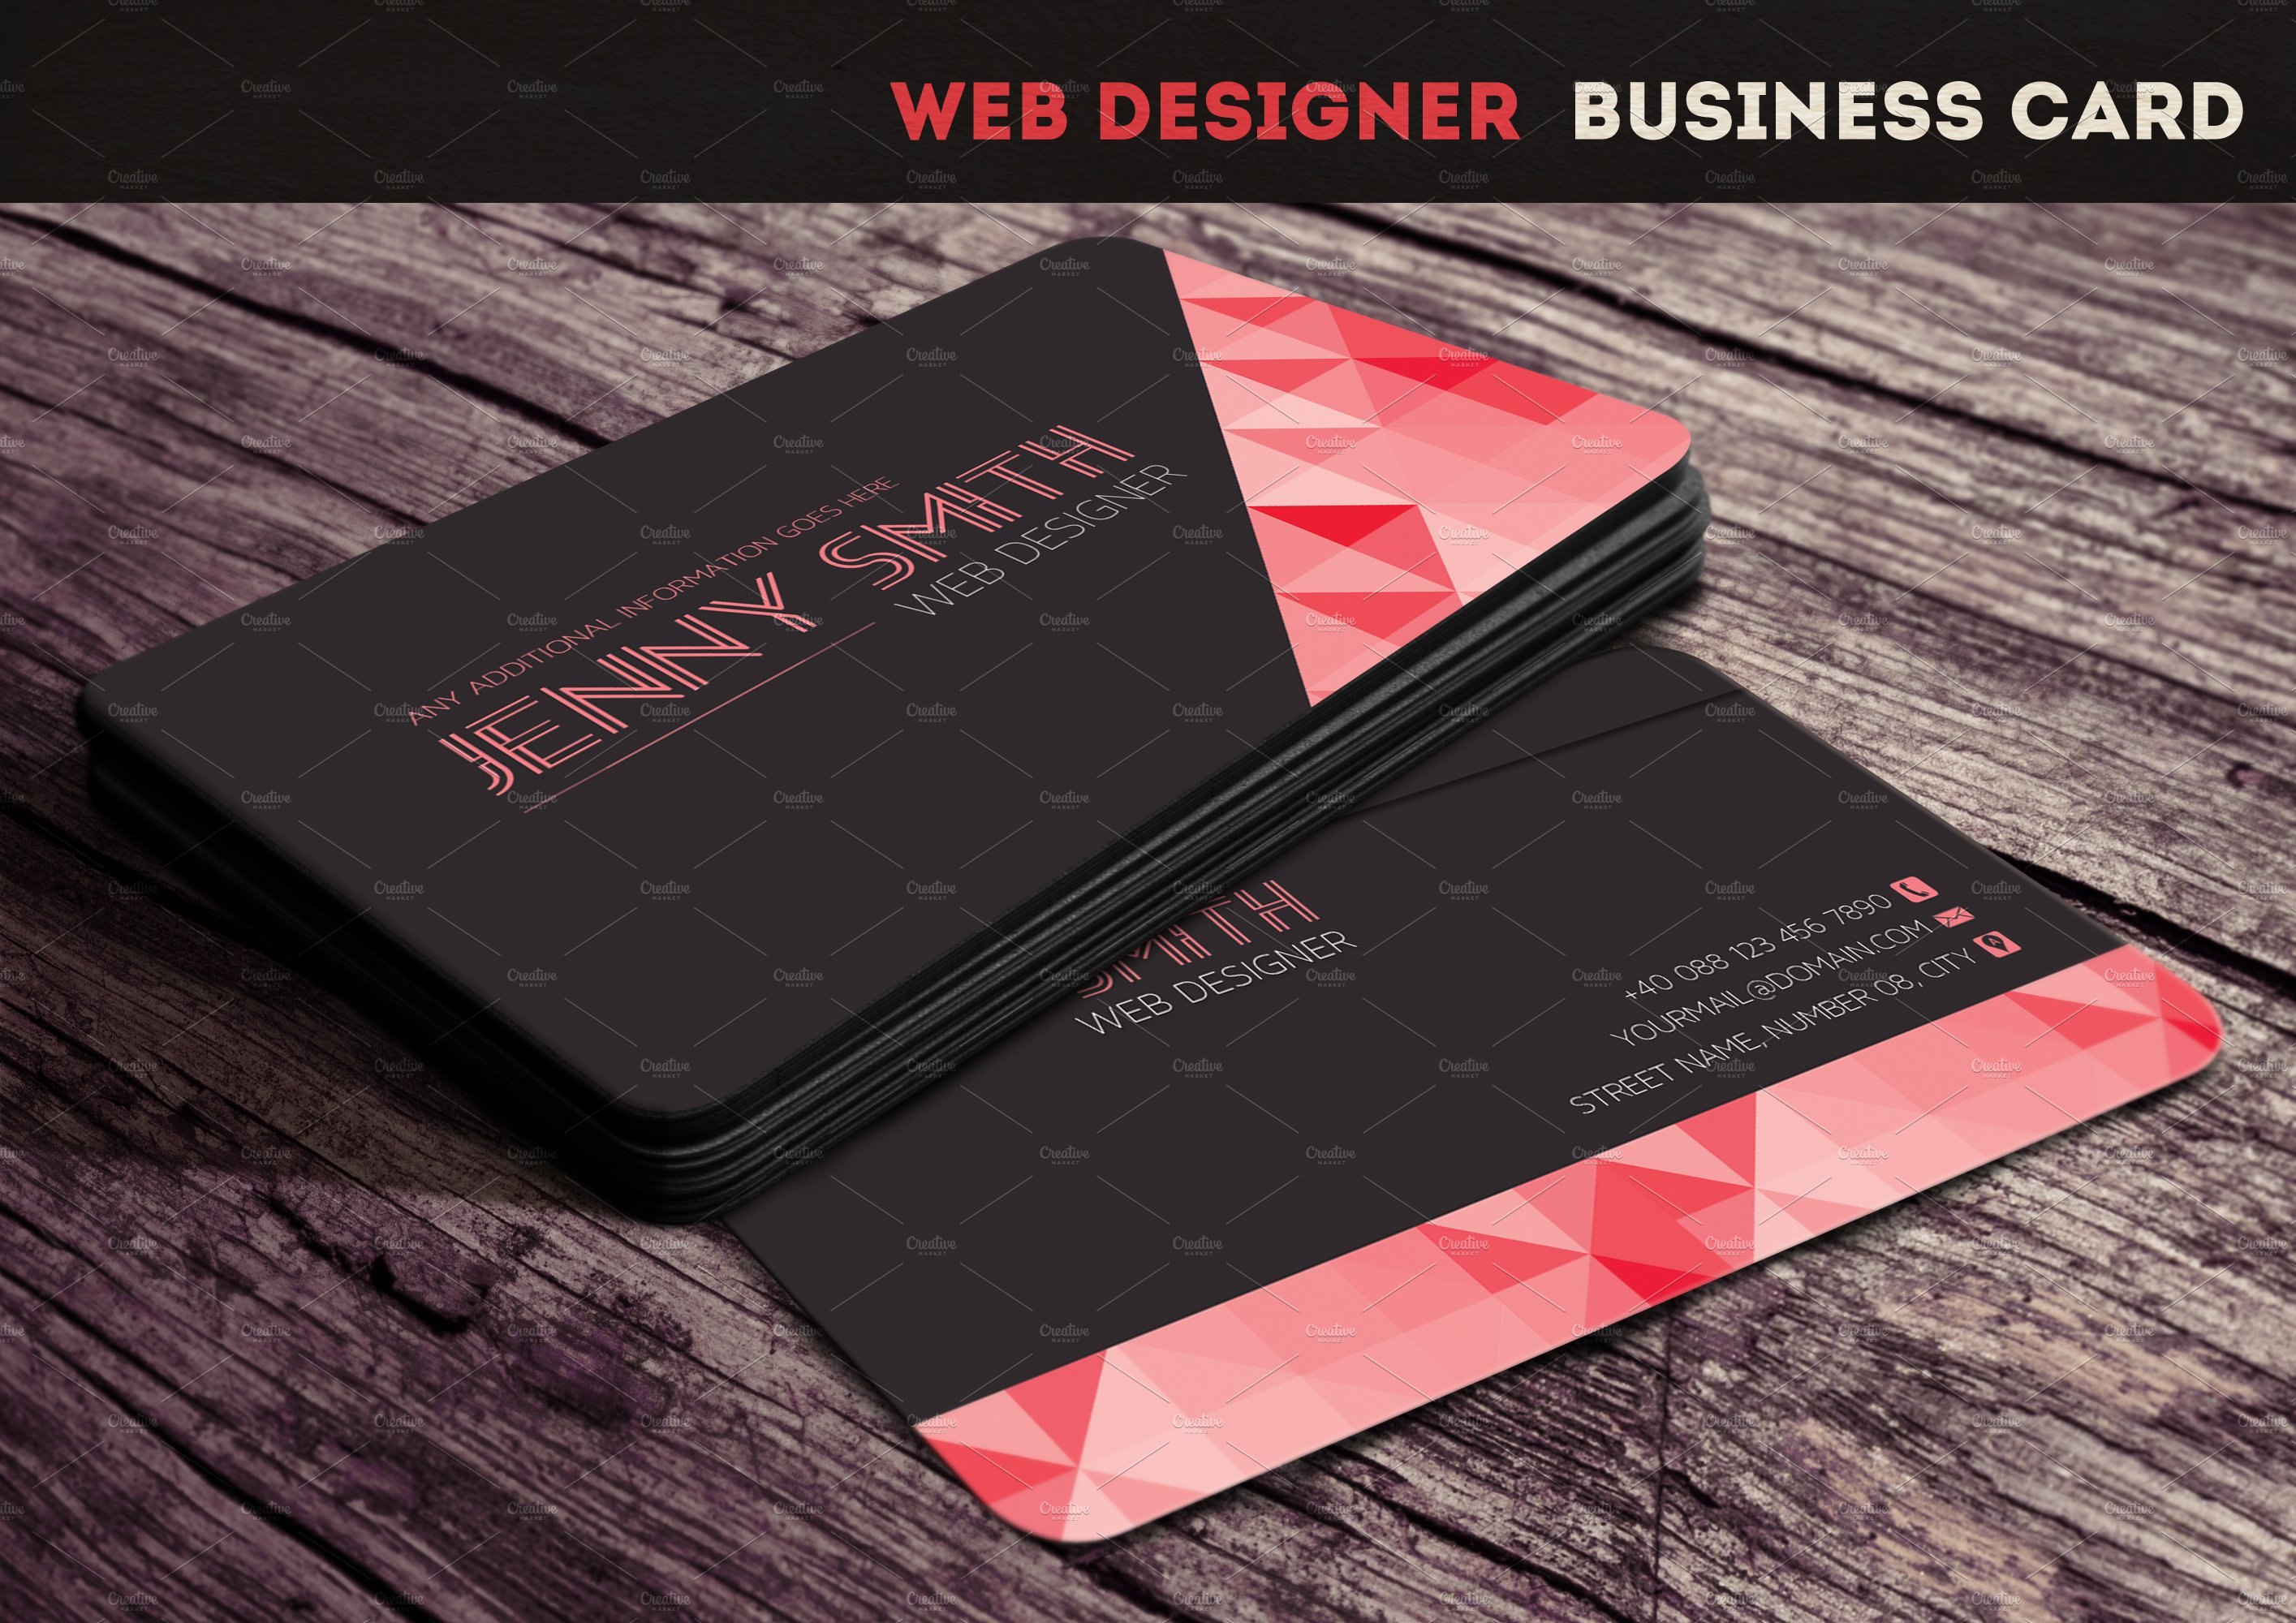 Web designer business card business card templates creative market reheart